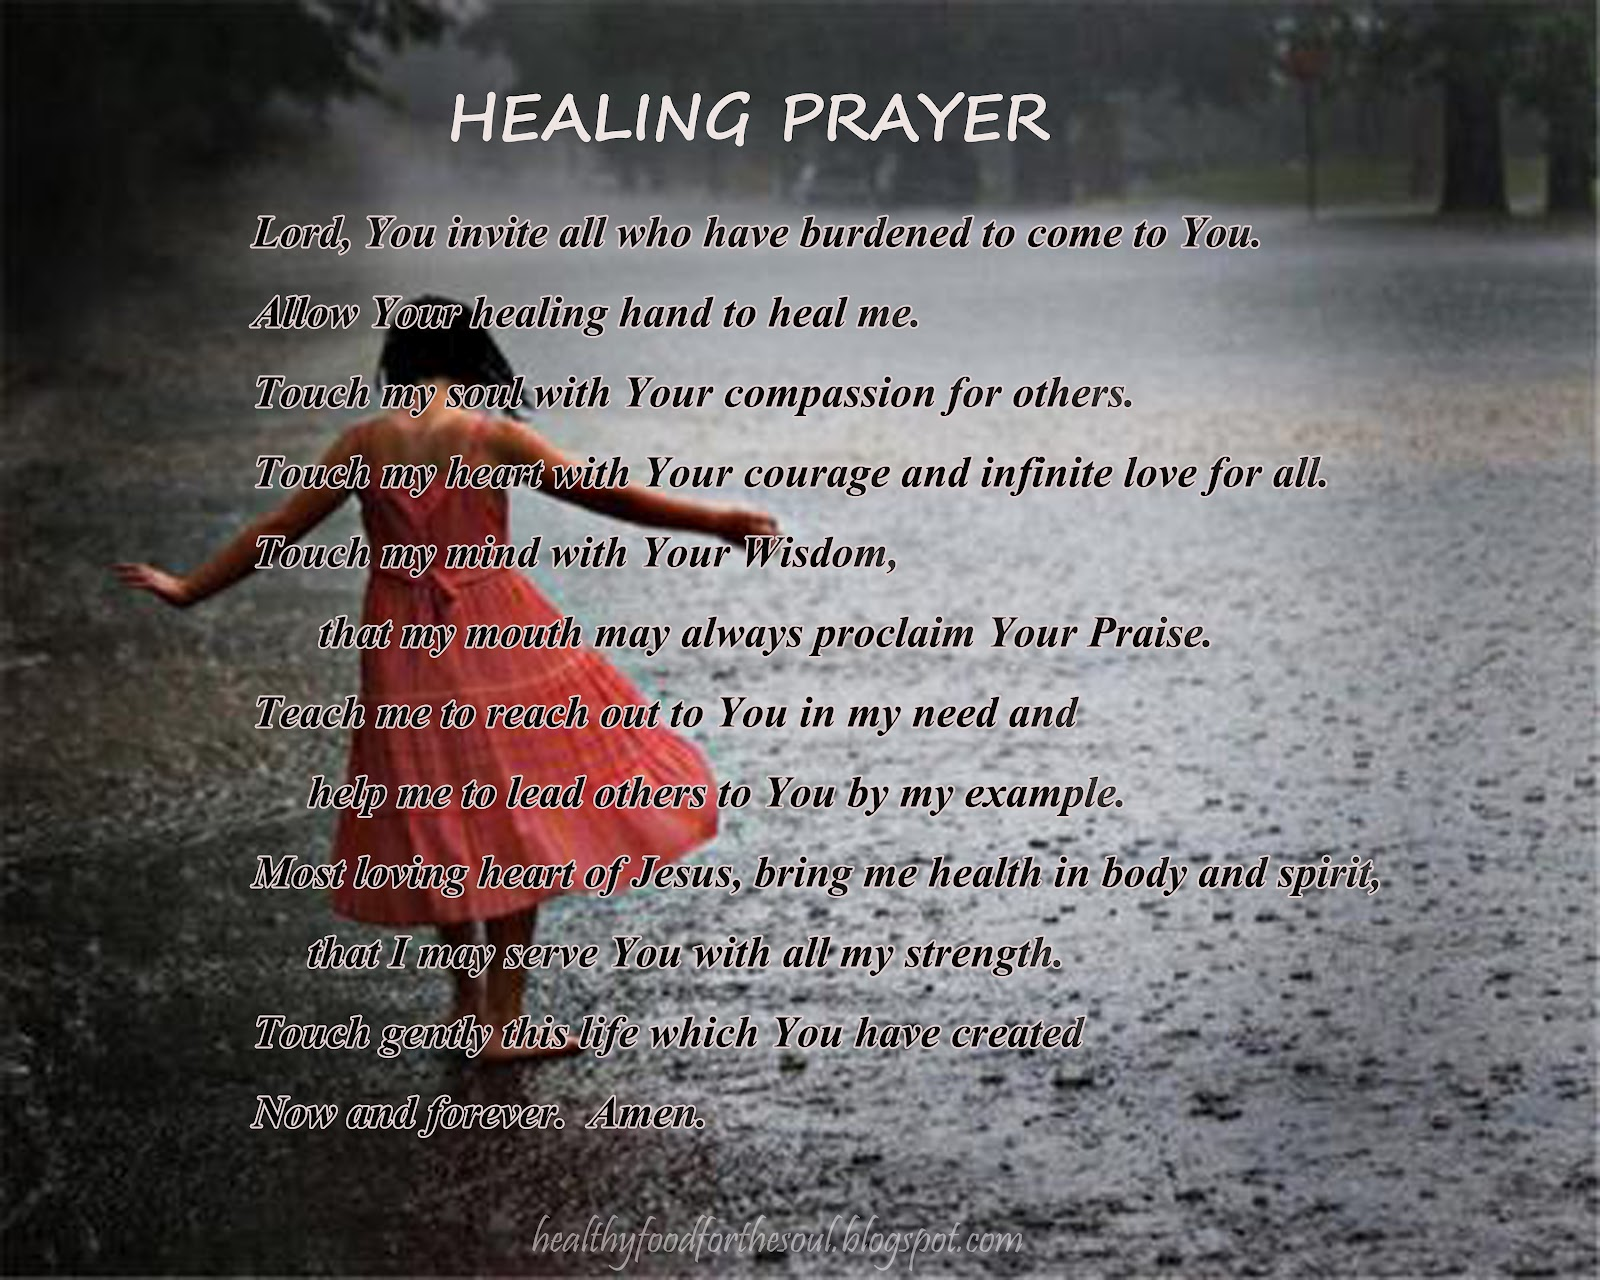 Prayer quotes for healing a friend